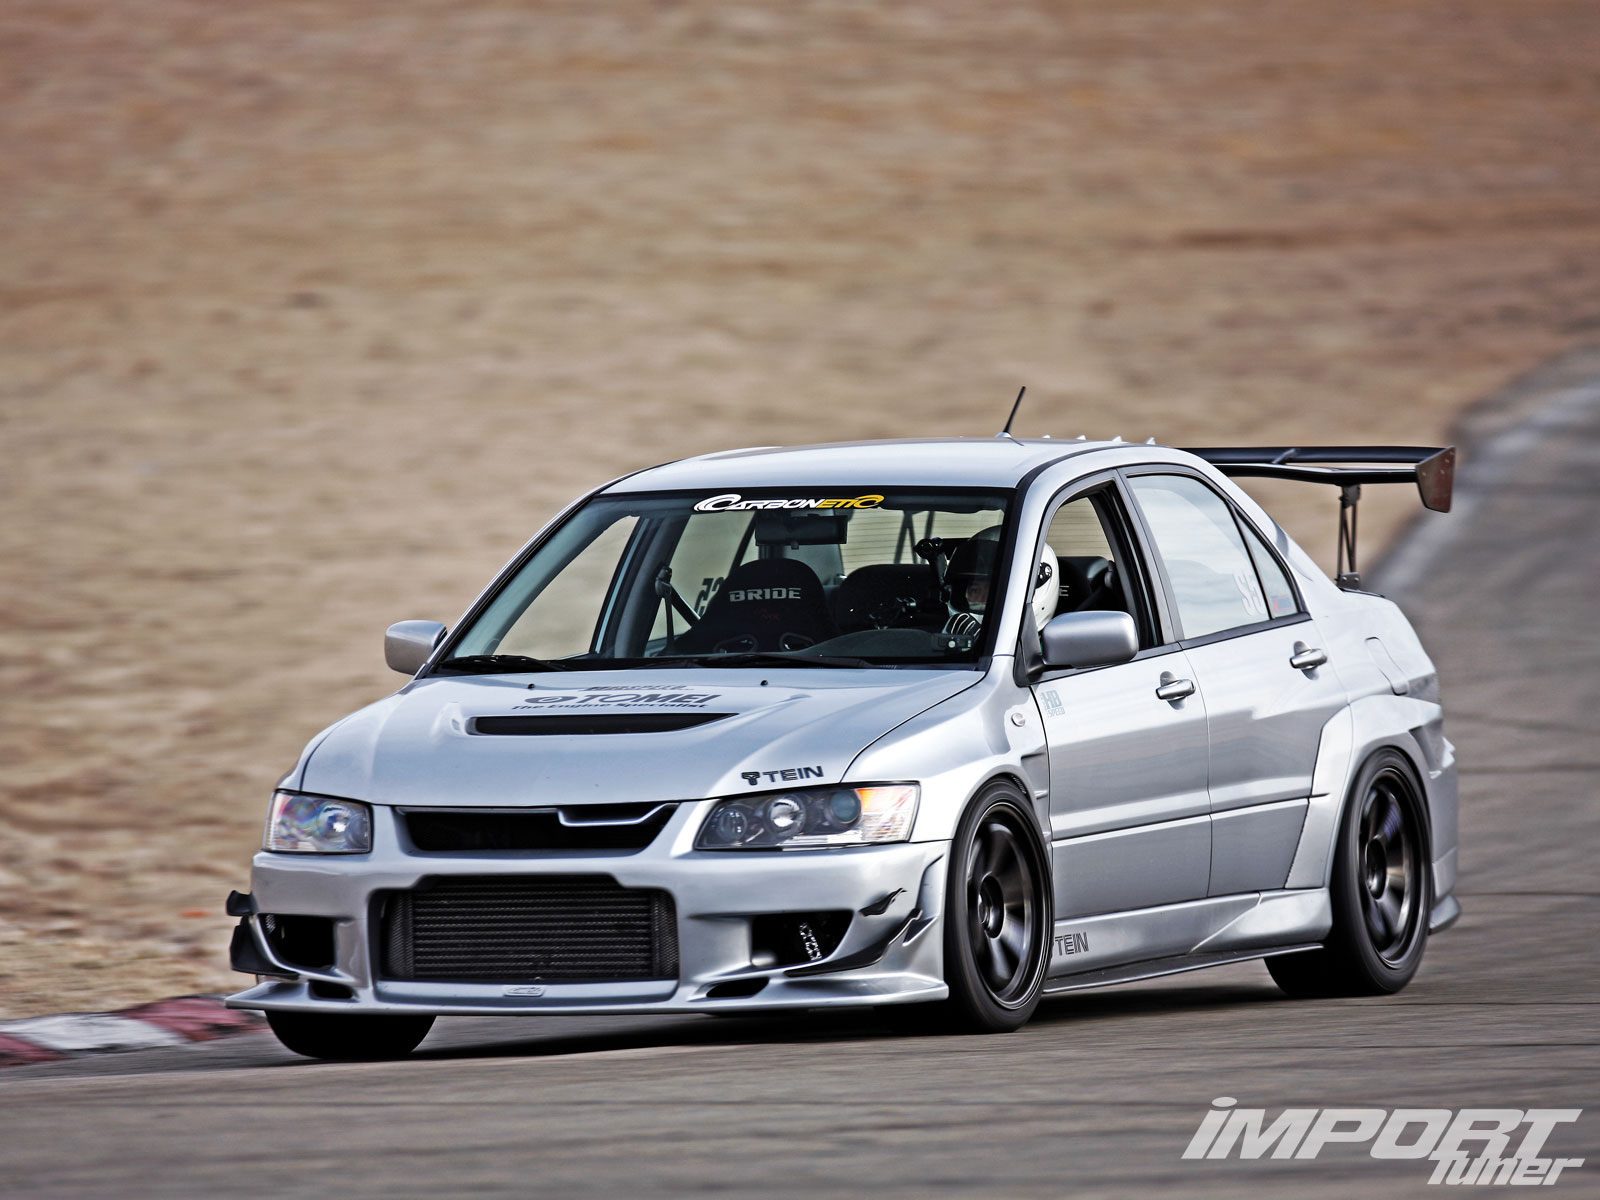 photo 1 enlarge photo 1279x854 2006 mitsubishi lancer evolution